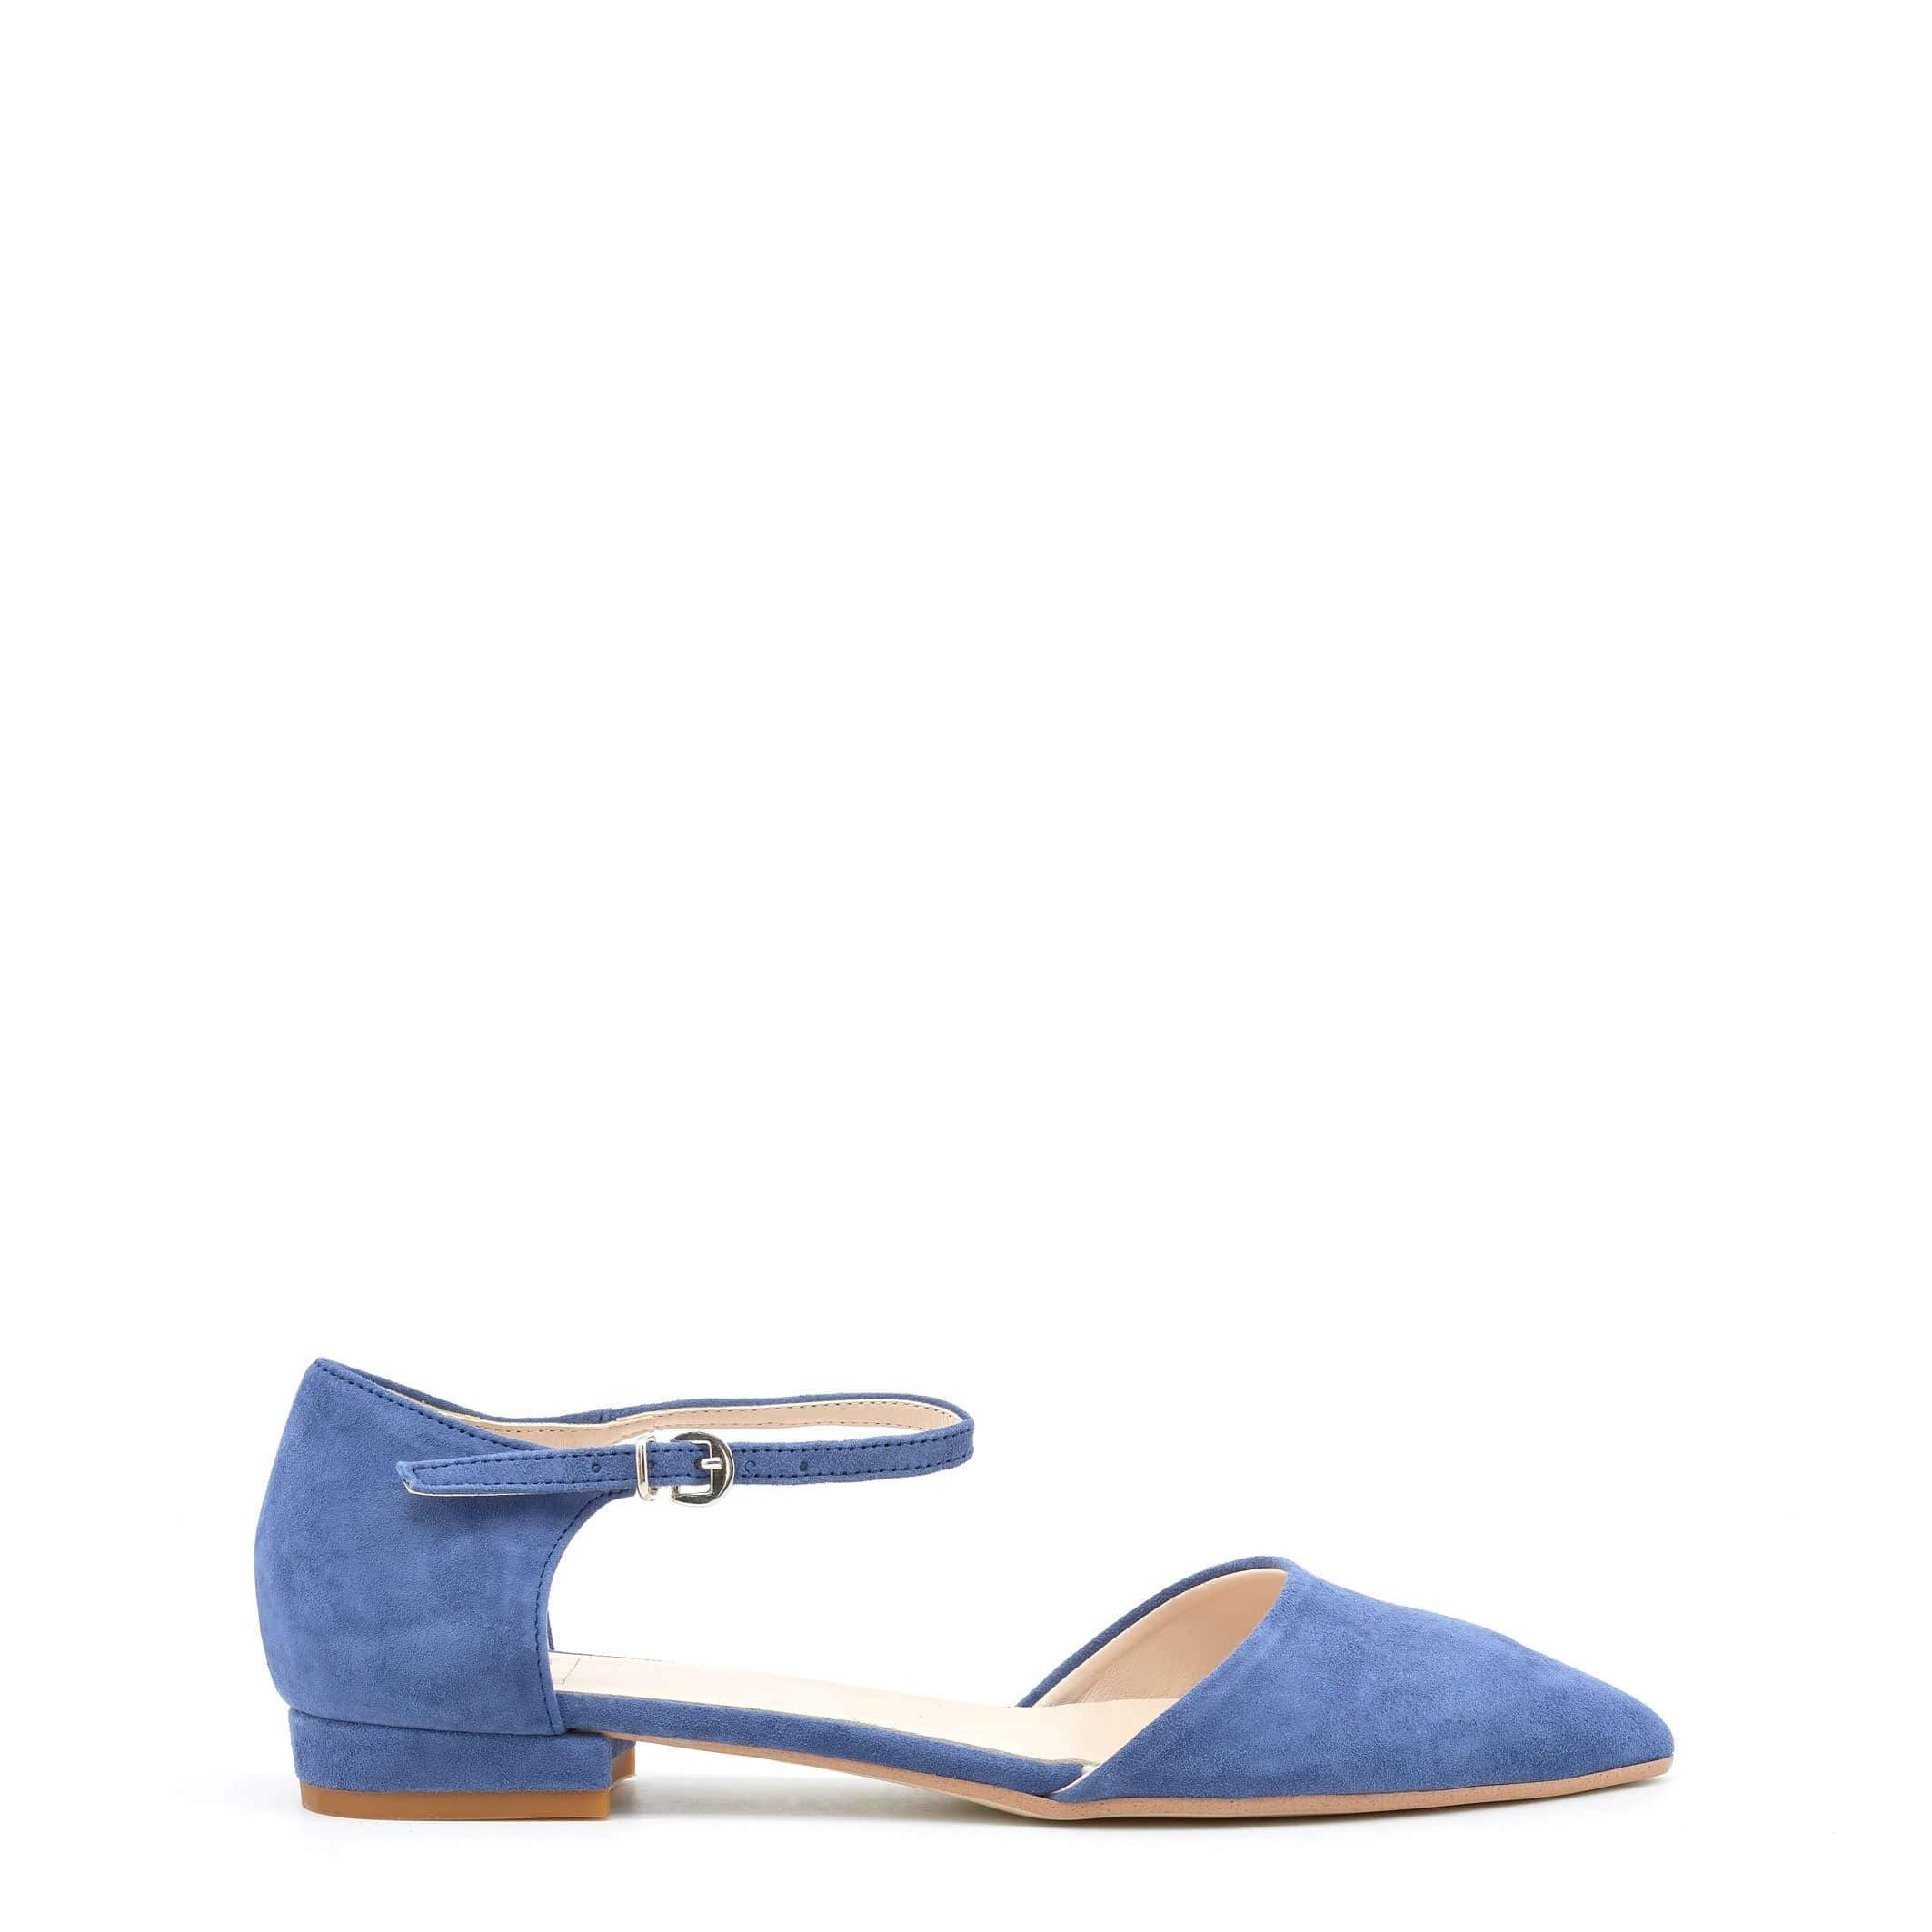 Made in Italia Shoes Ballet flats blue / 36 Made in Italia - BACIAMI